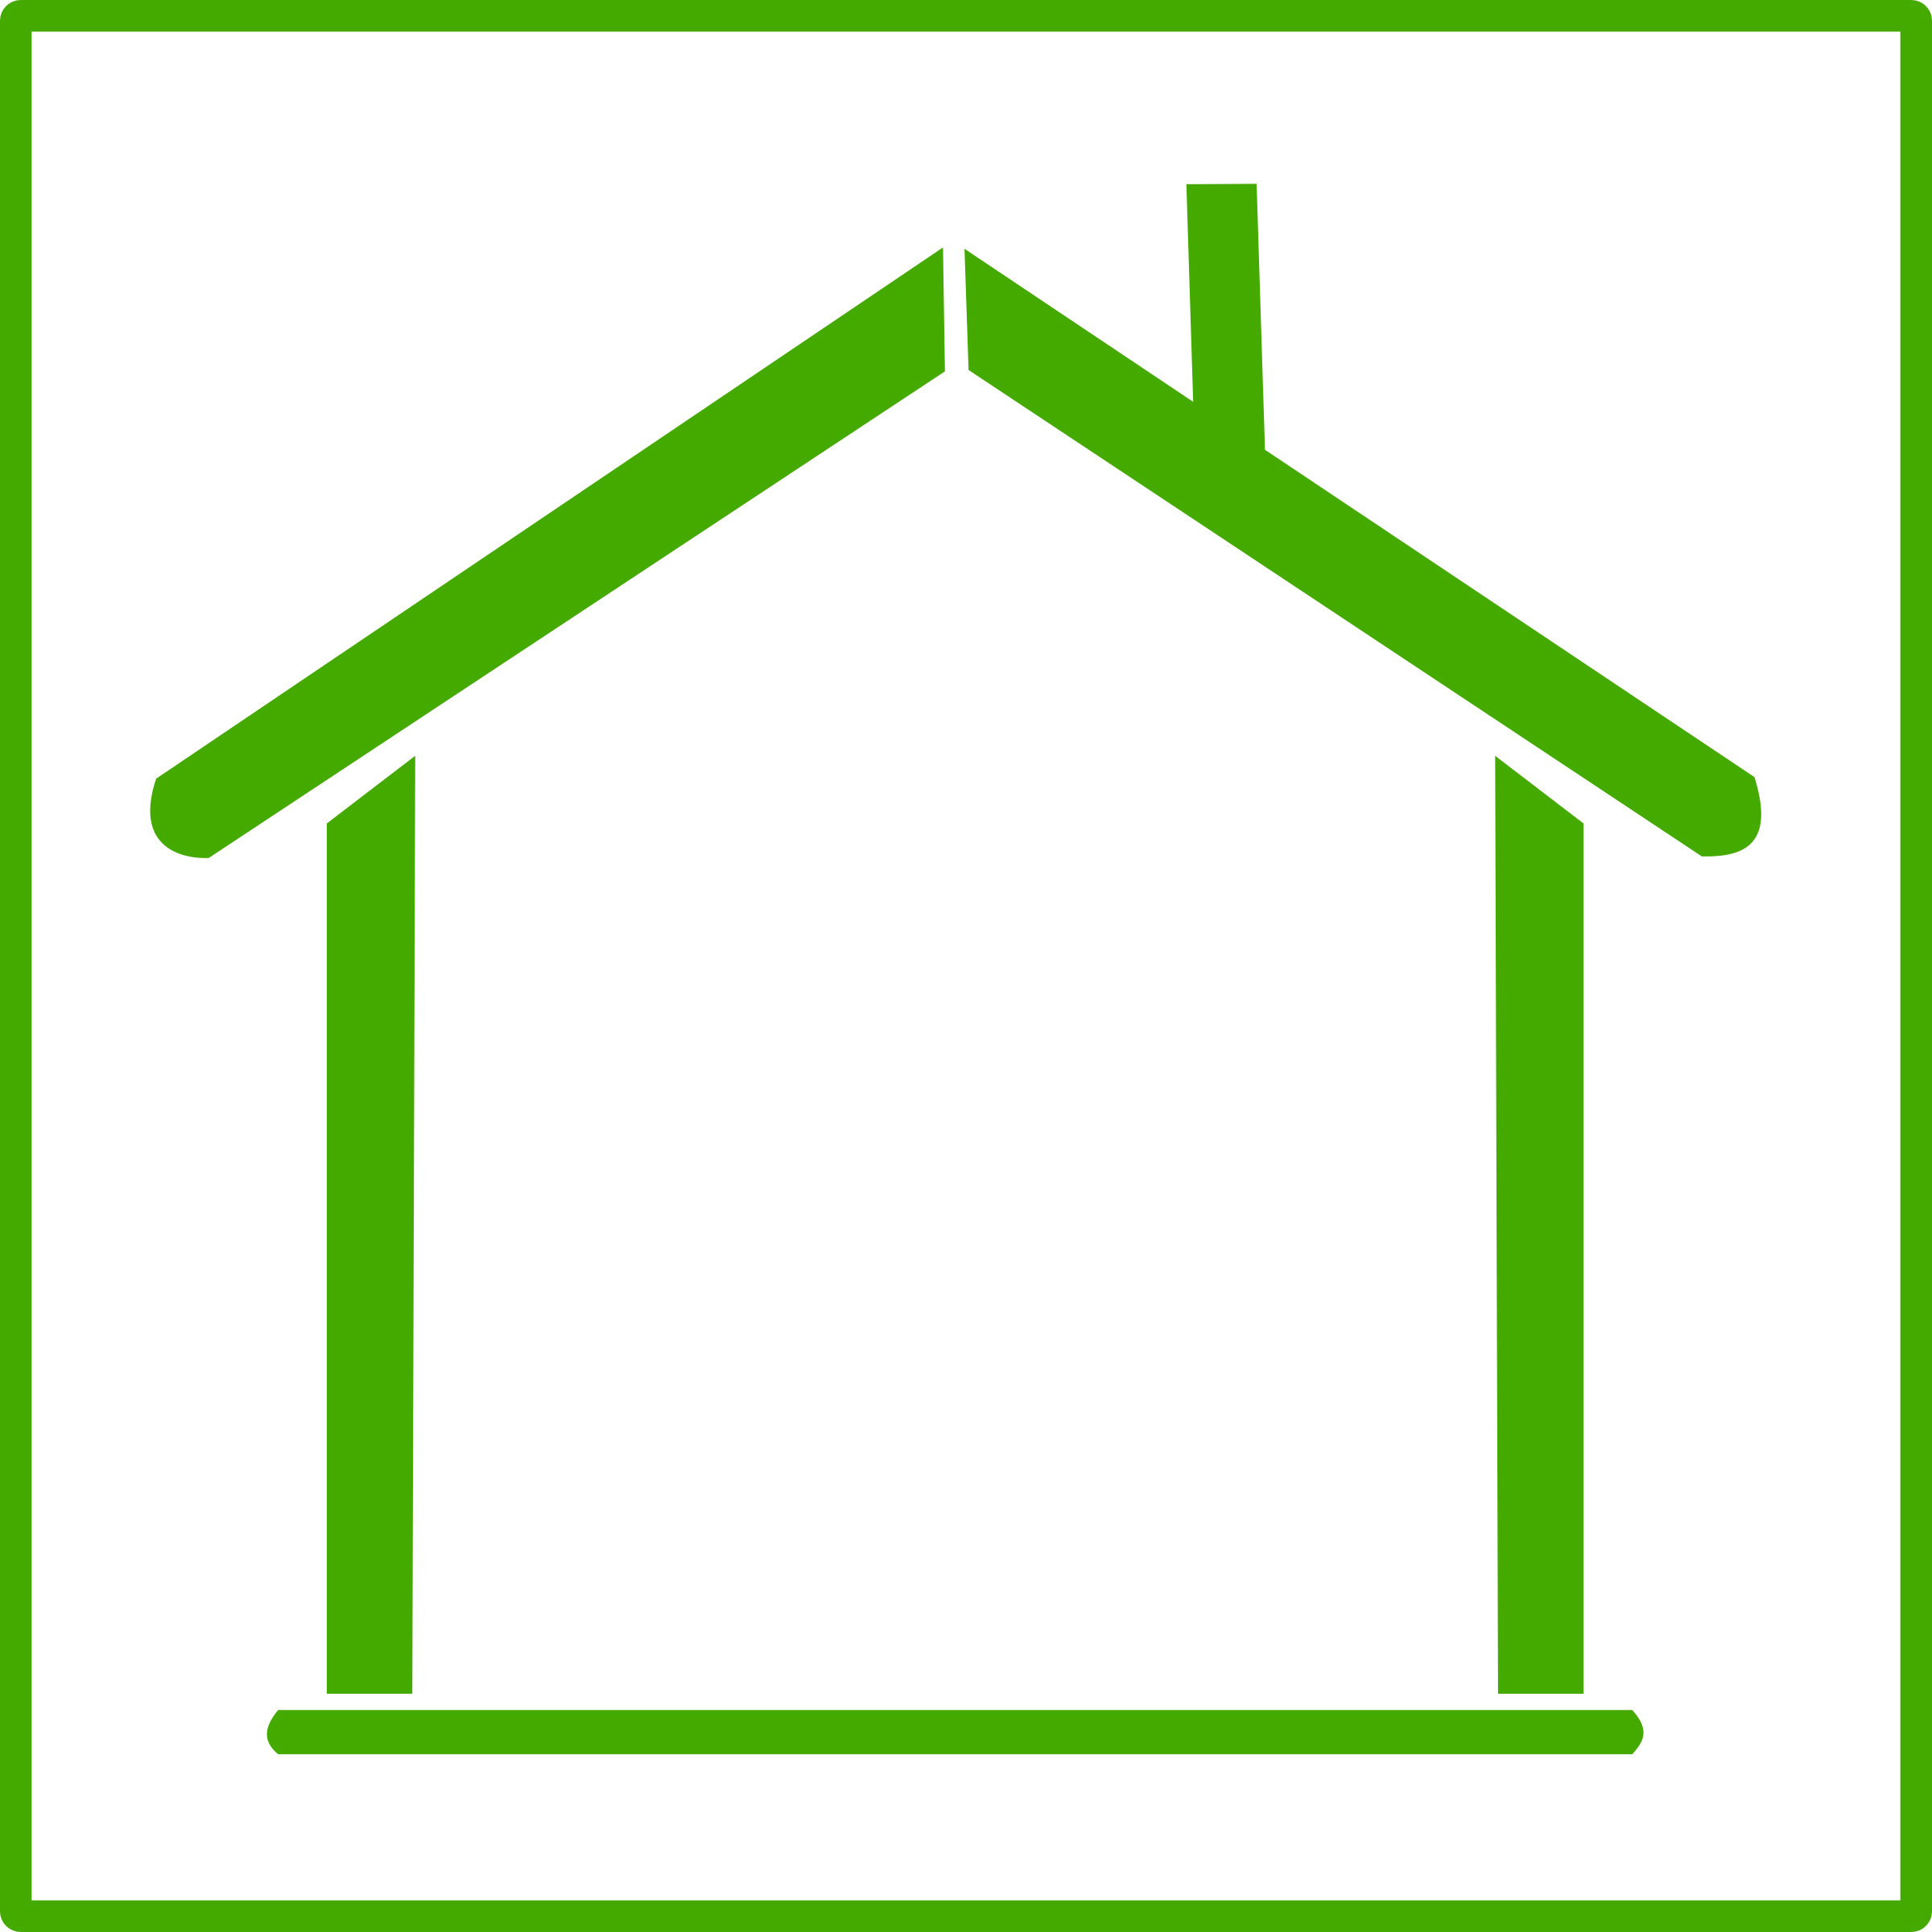 Free icon outline download. House clipart vector